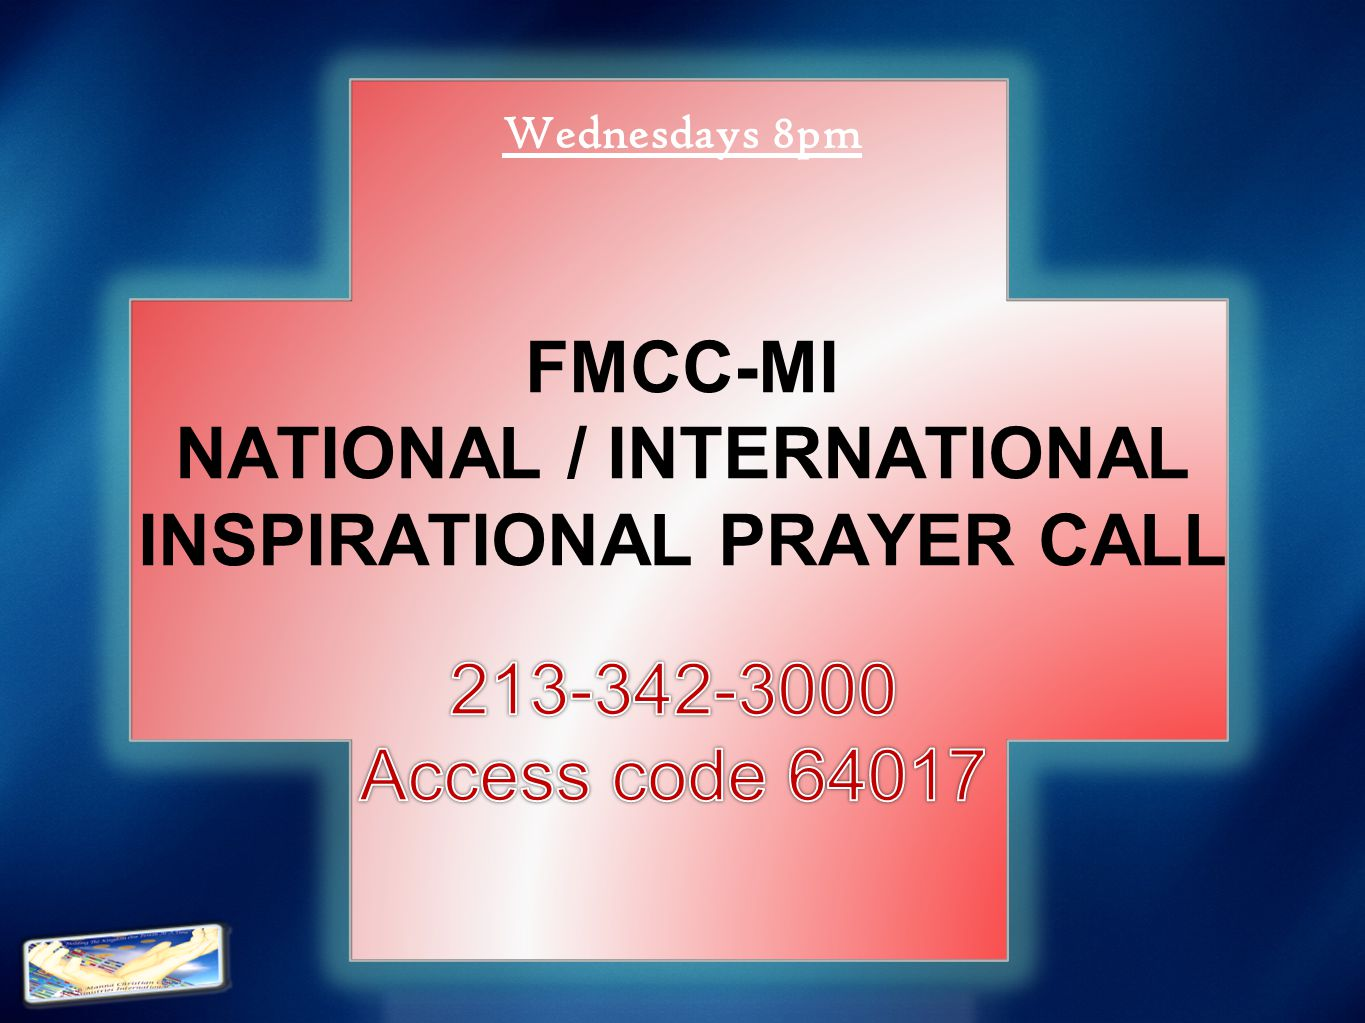 FMCC-MI NATIONAL / INTERNATIONAL INSPIRATIONAL PRAYER CALL Wednesdays 8pm